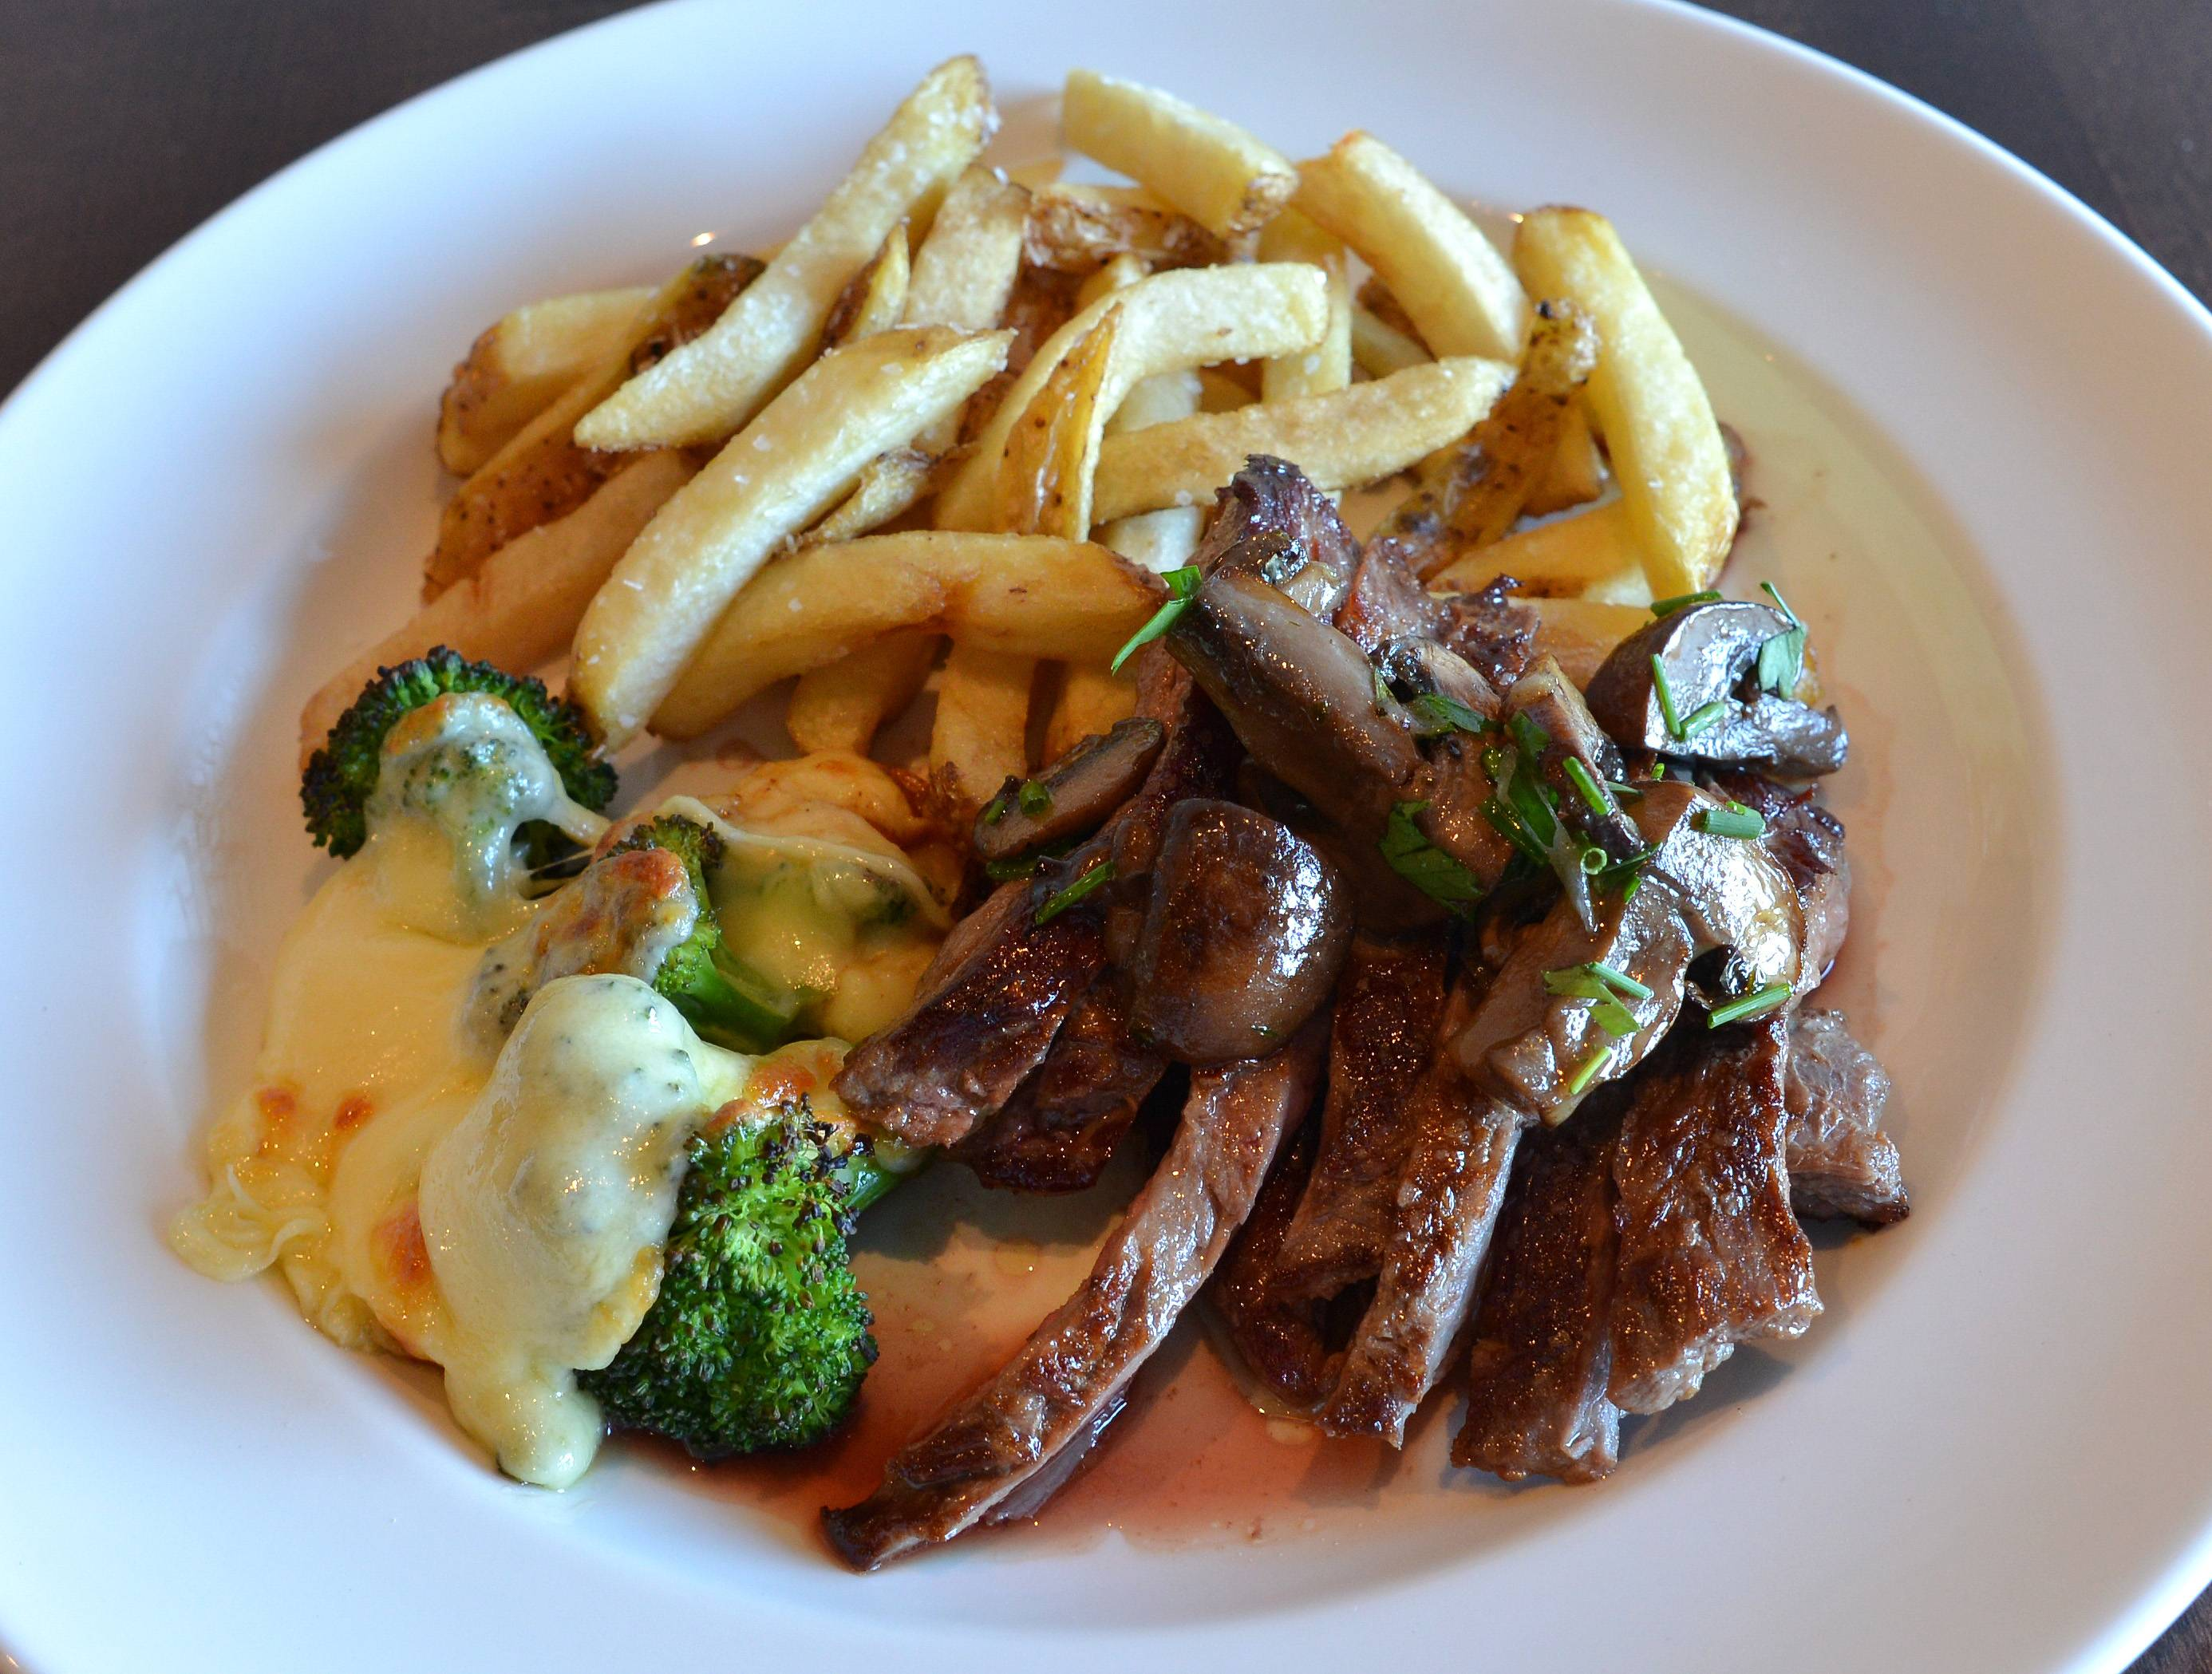 Comfort food is kicked up a notch at Vistro, the latest by chef Paul Virant. Marinated skirt steak, for example, is topped with mushrooms and herb butter and paired with broccoli, cheese curds and french fries.